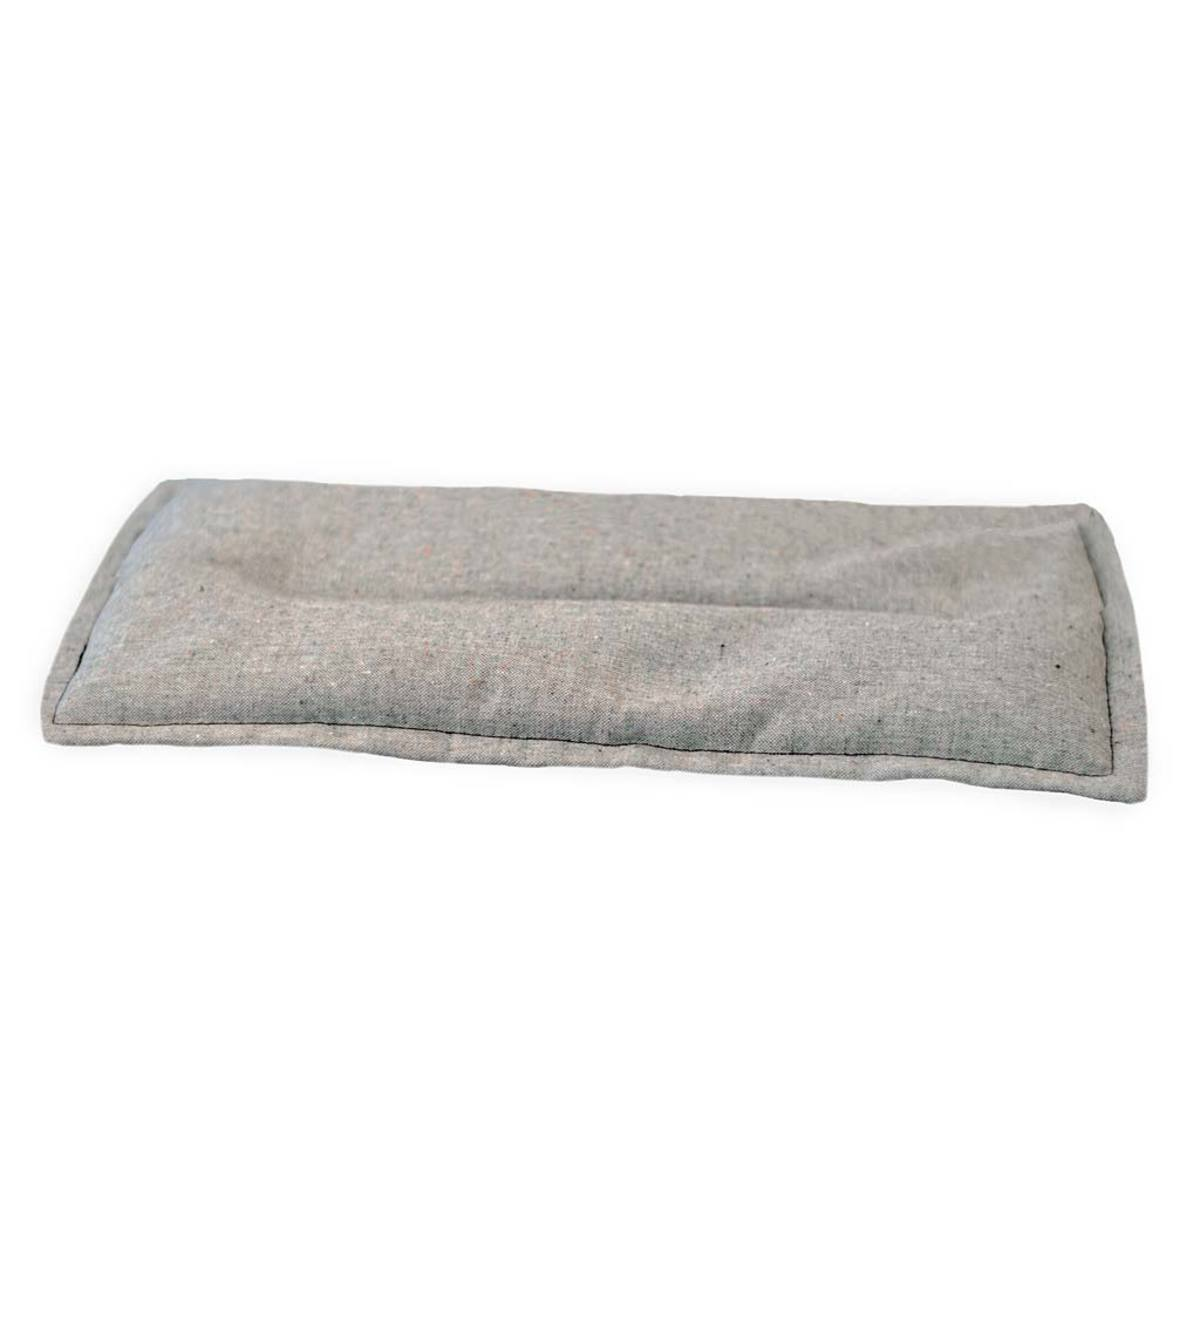 Organic Hemp and Herb Warming/Cooling Comfort Pack - Gray